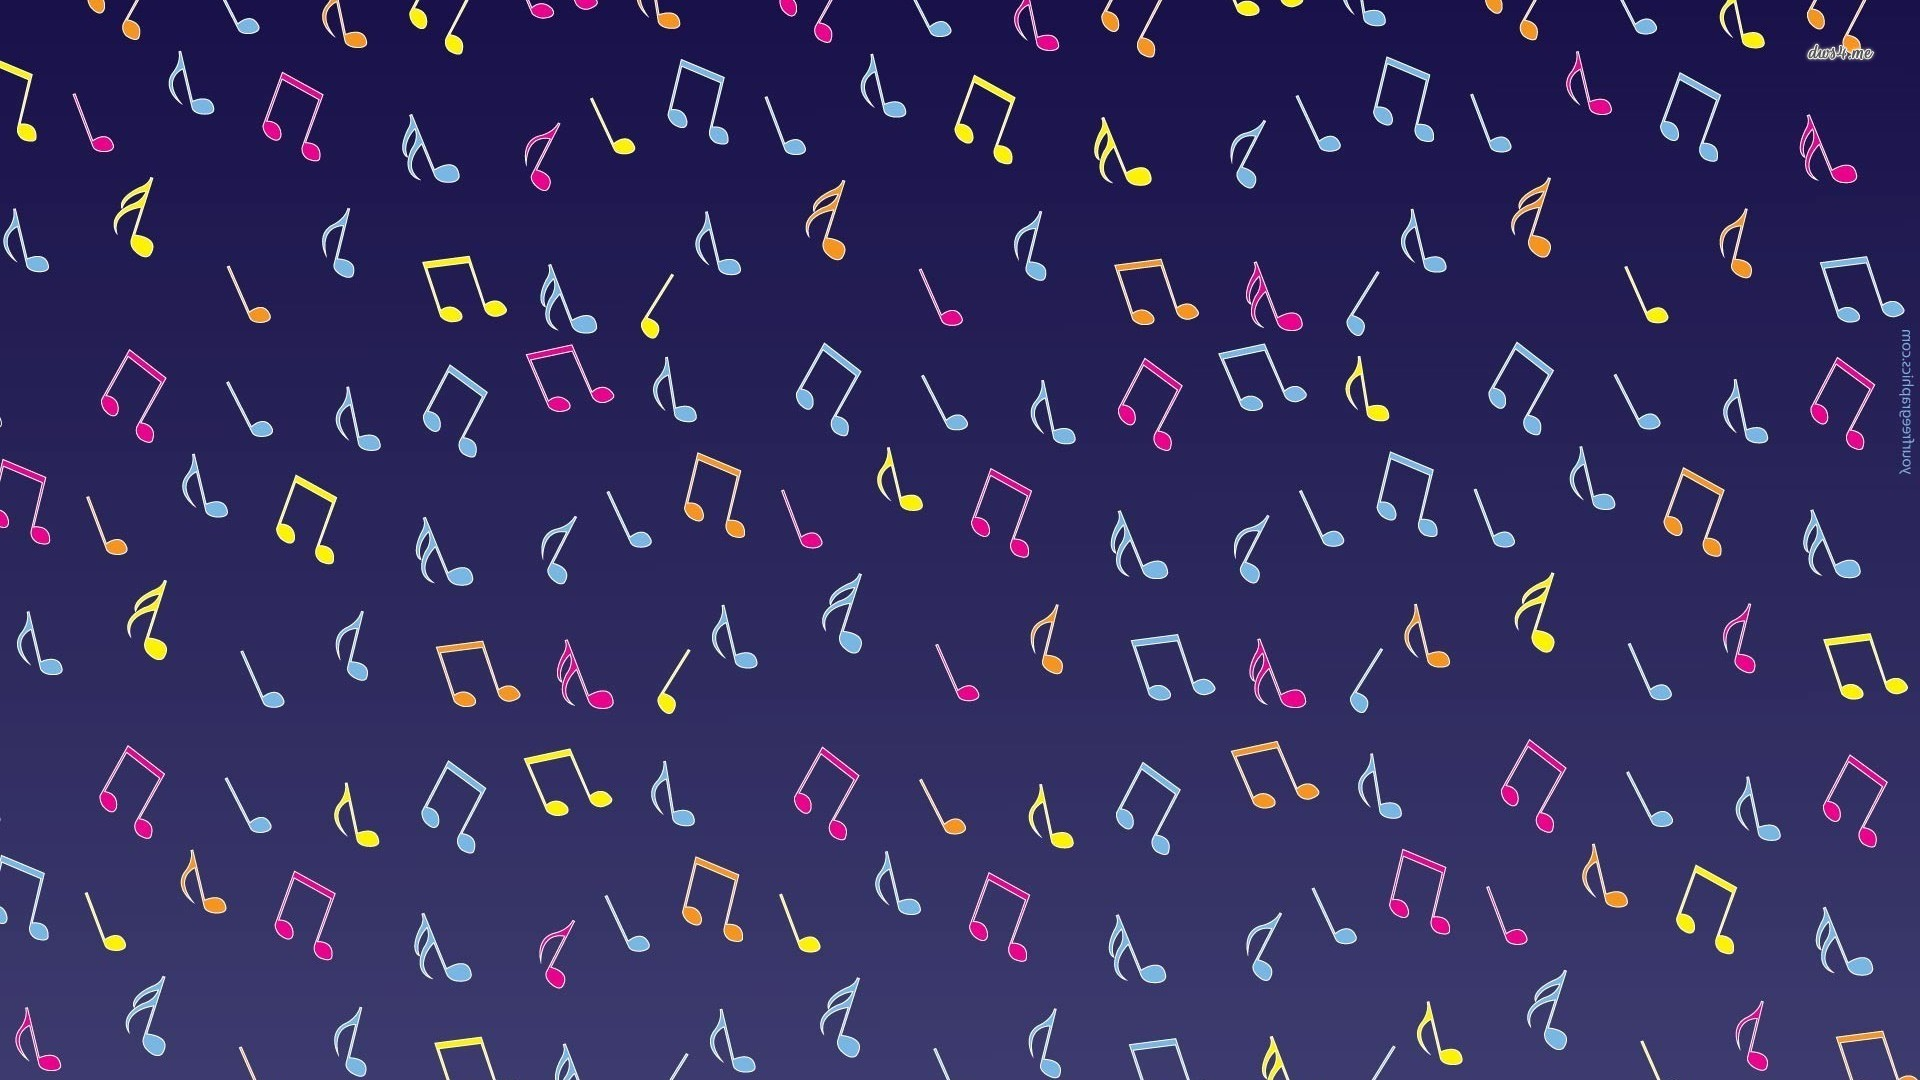 Great Wallpaper Music Purple - music-notes-wallpaper-16215-16714-hd-wallpapers  Image_659016.jpg